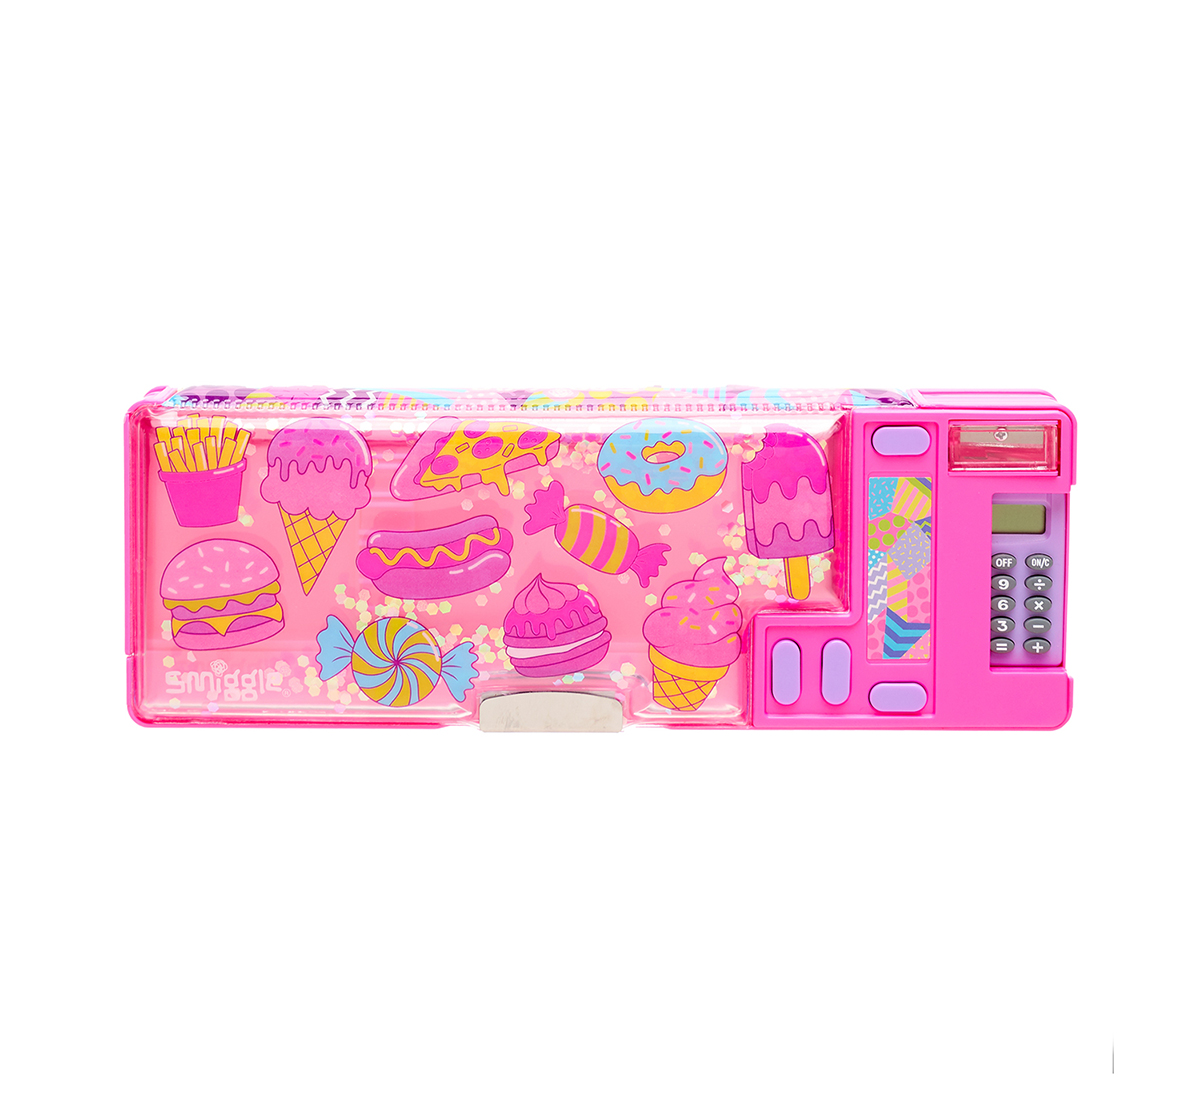 Smiggle | Smiggle Far Away Pop Out Pencil Case - Ice-cream Print Bags for Kids age 6Y+ (Pink)